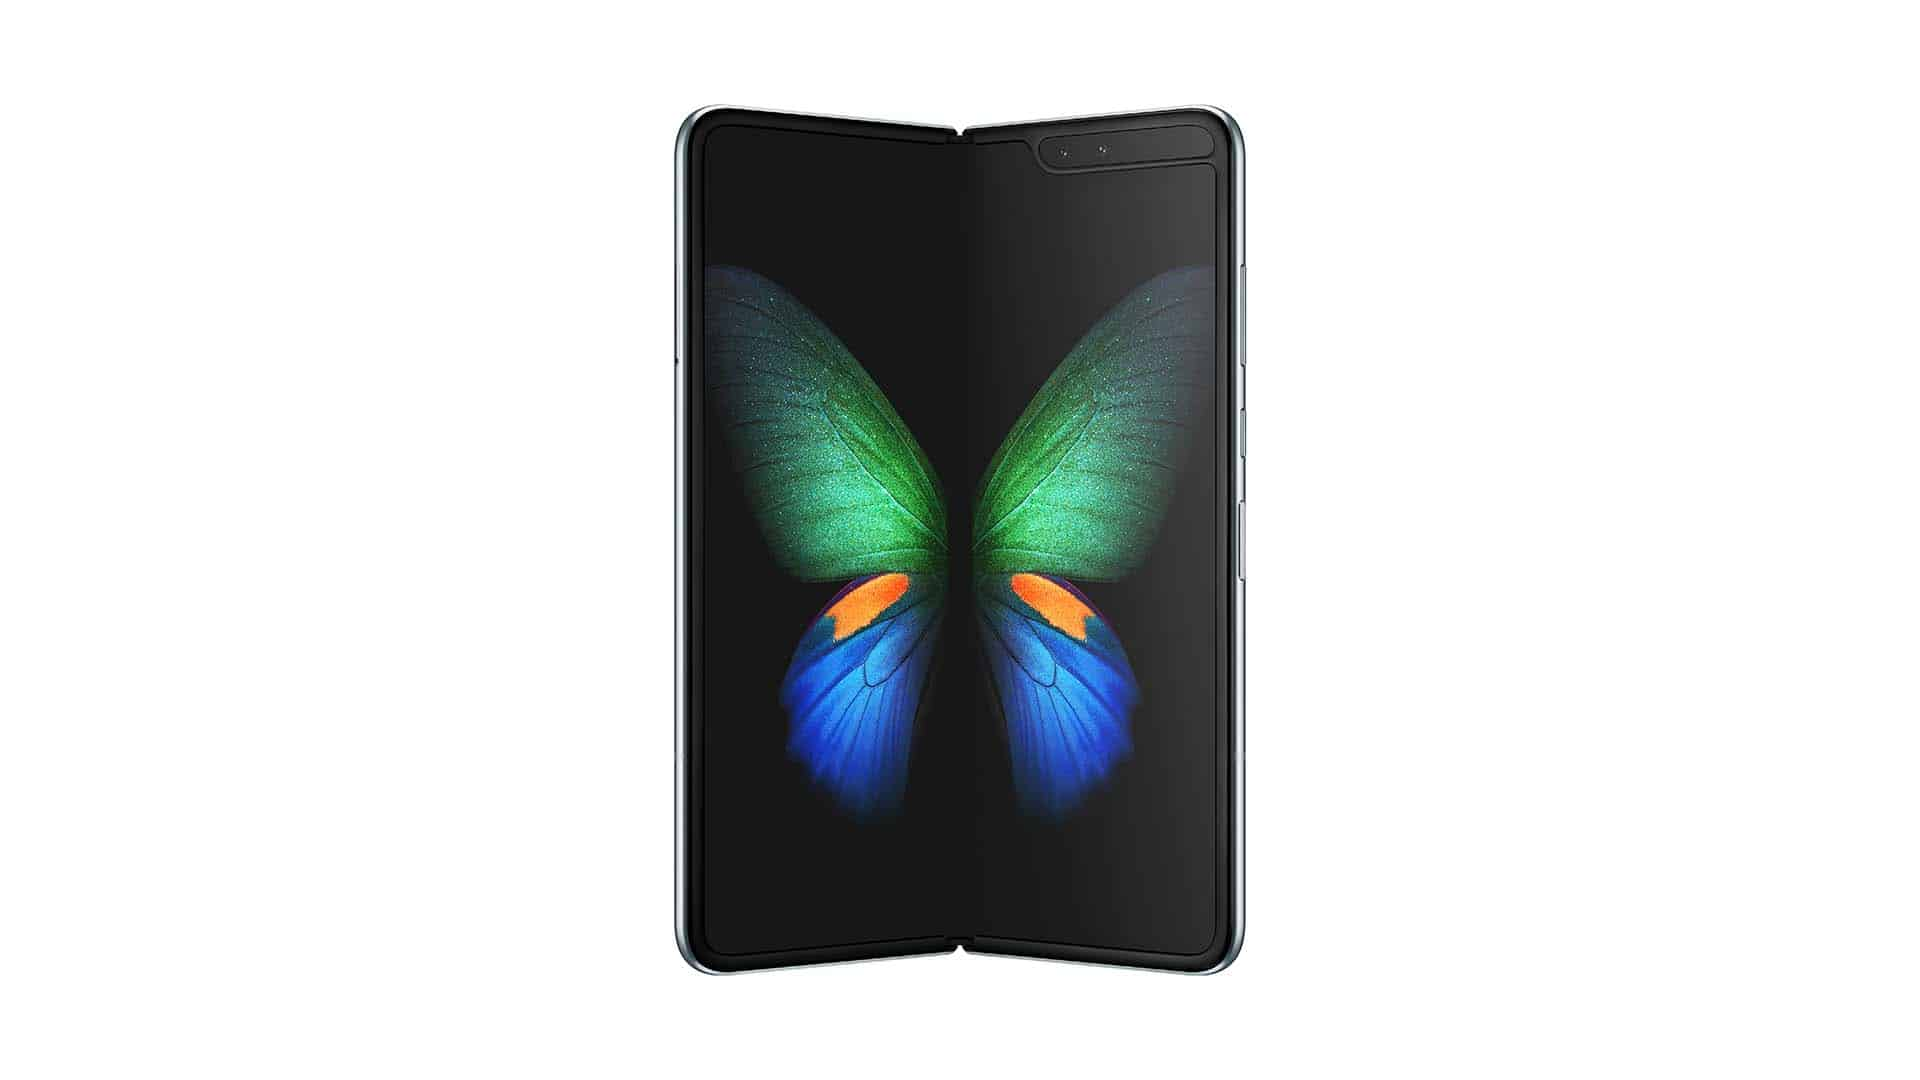 Samsung Galaxy Fold Official Render Downloaded April 22nd 2019